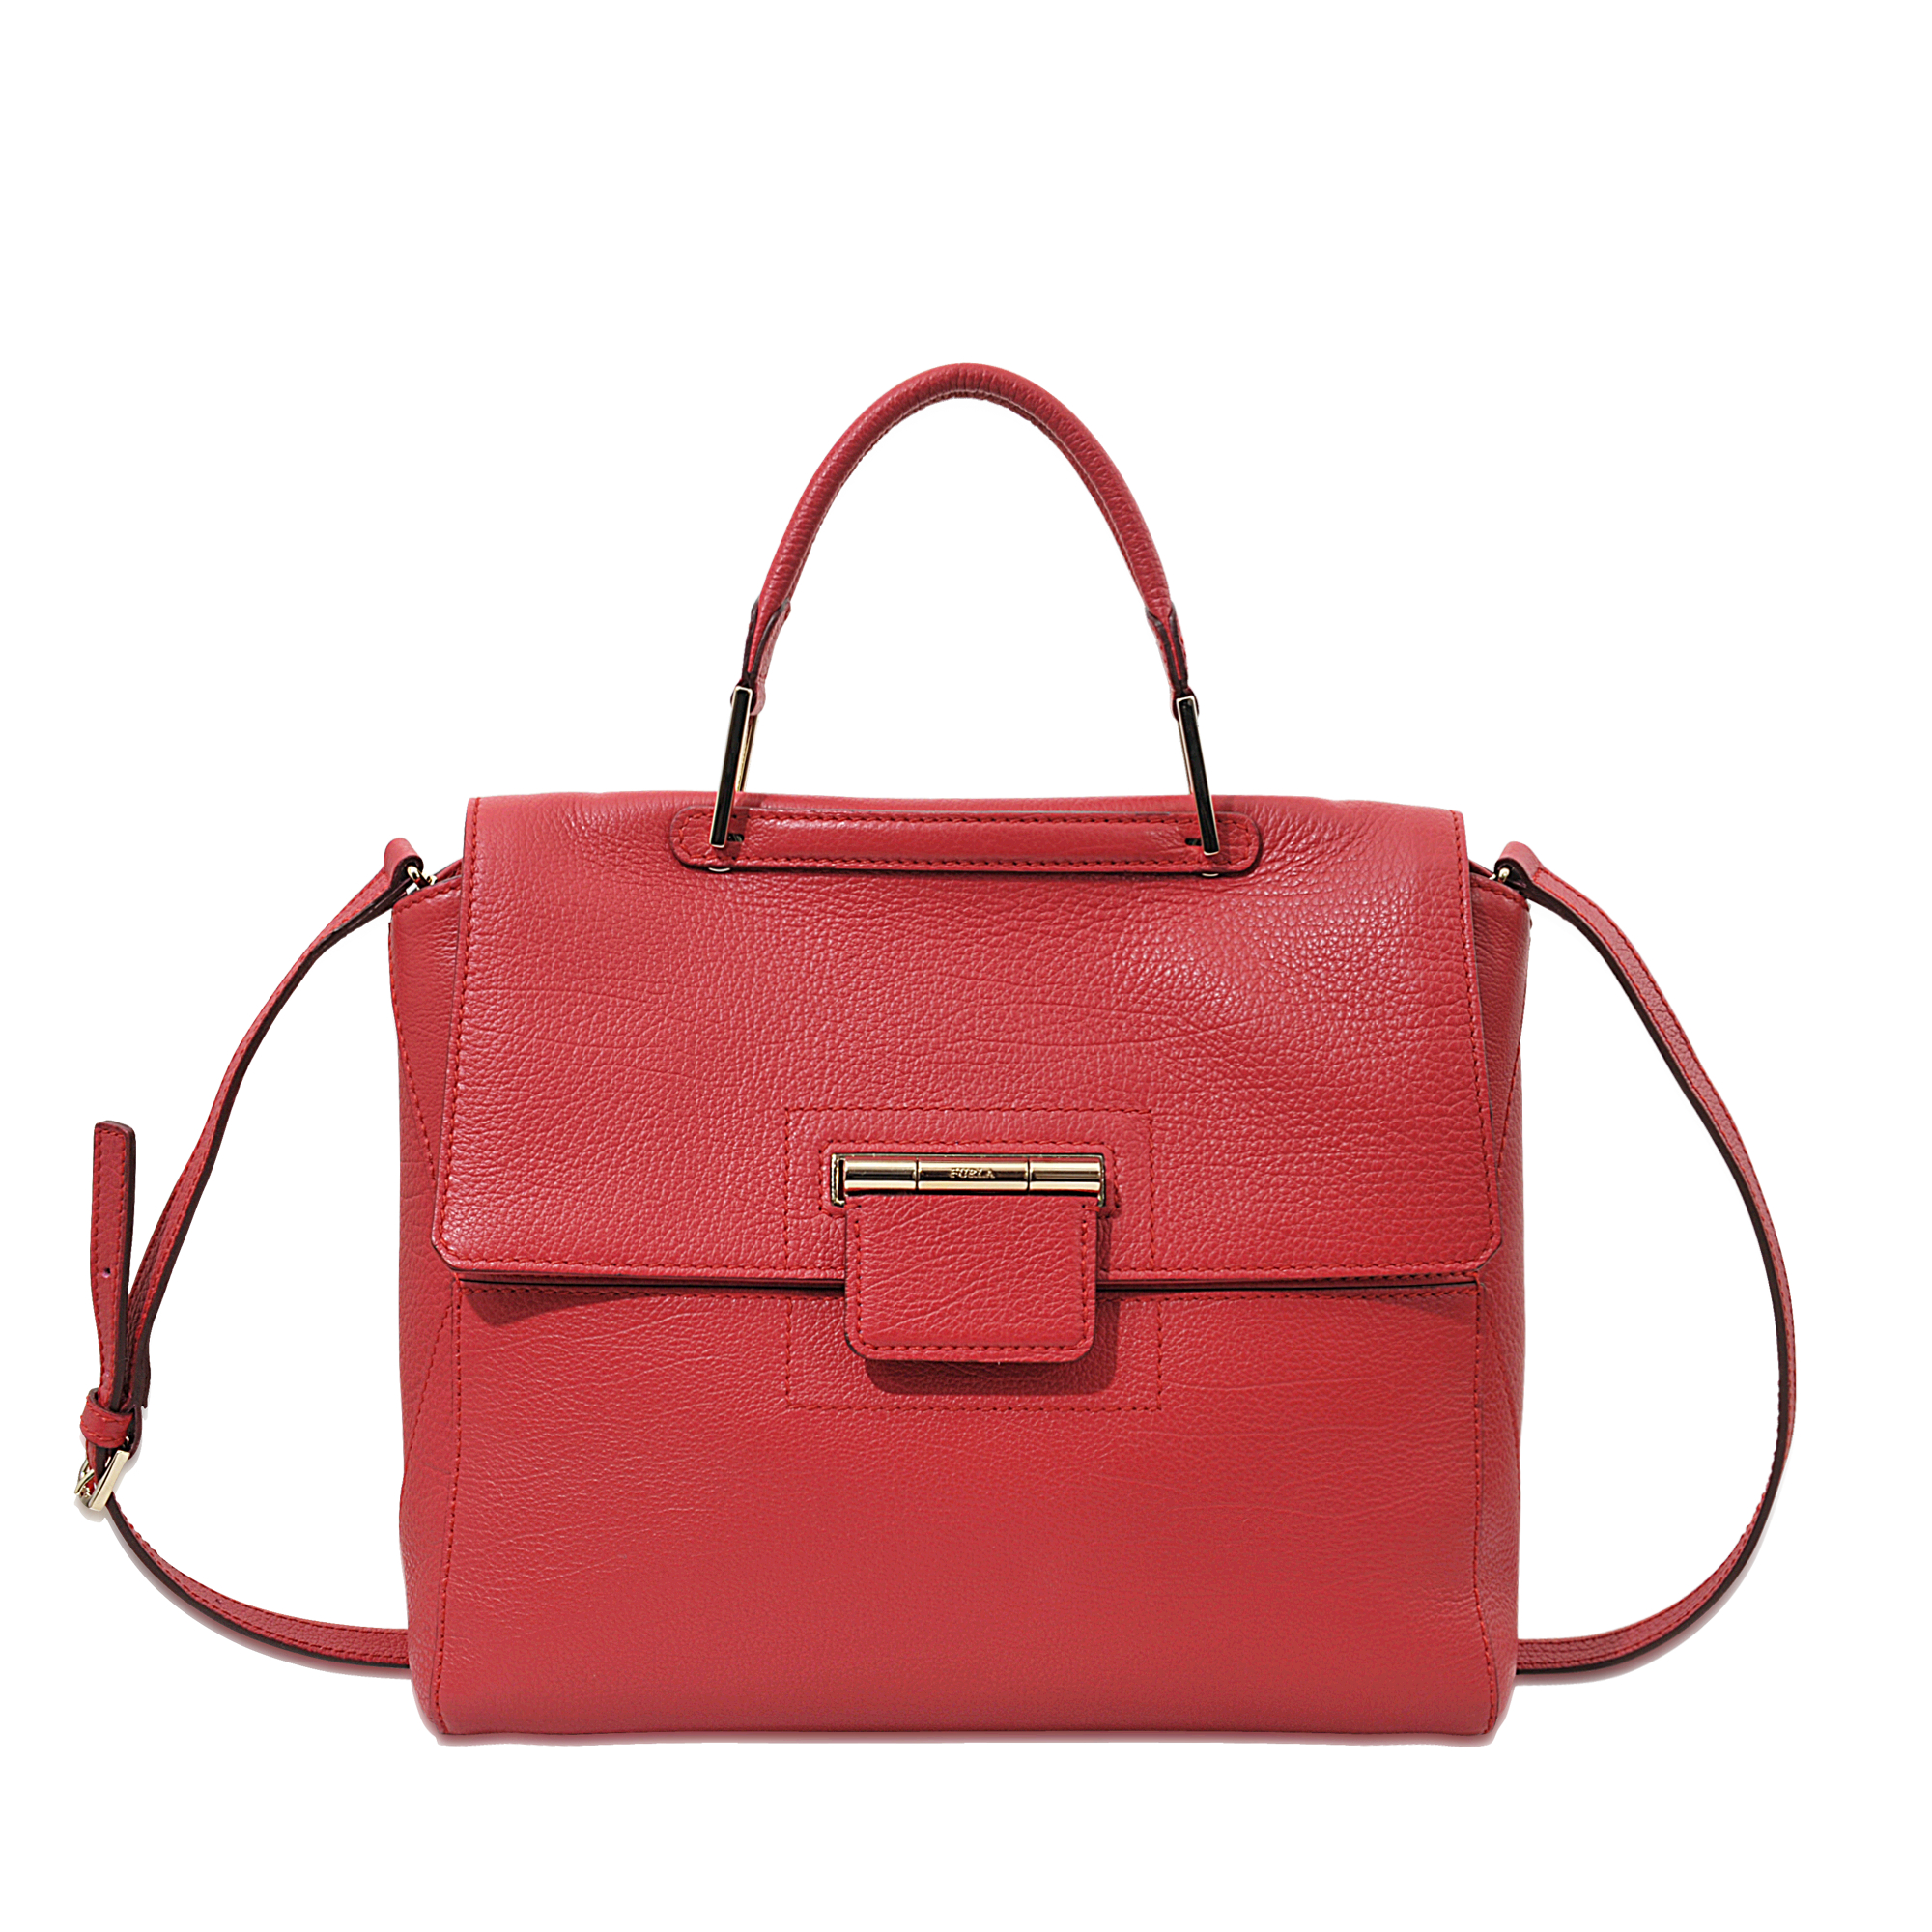 Furla Artesia M Top Handle Bag in Red